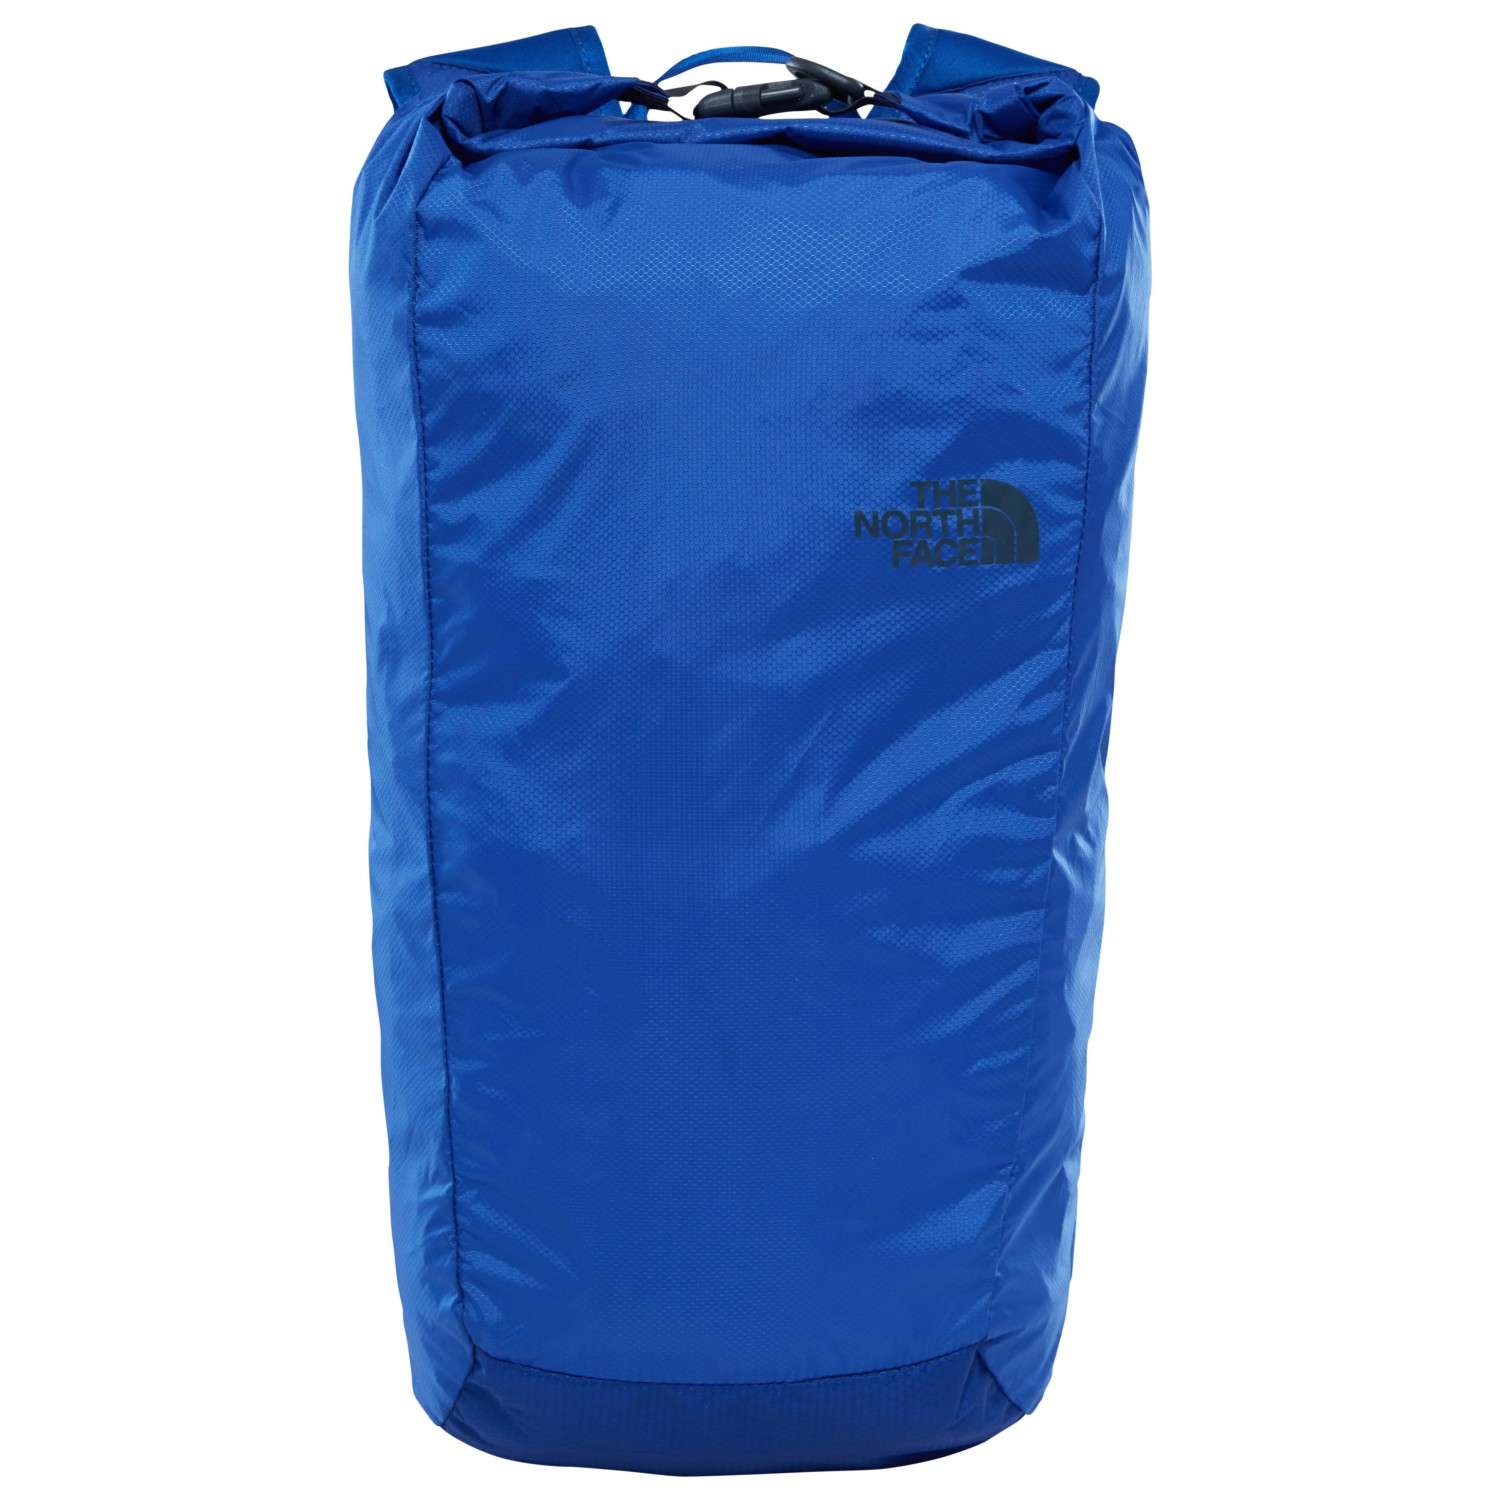 The North Face - Flyweight Rolltop - Zainetto ... d55158f0d83f